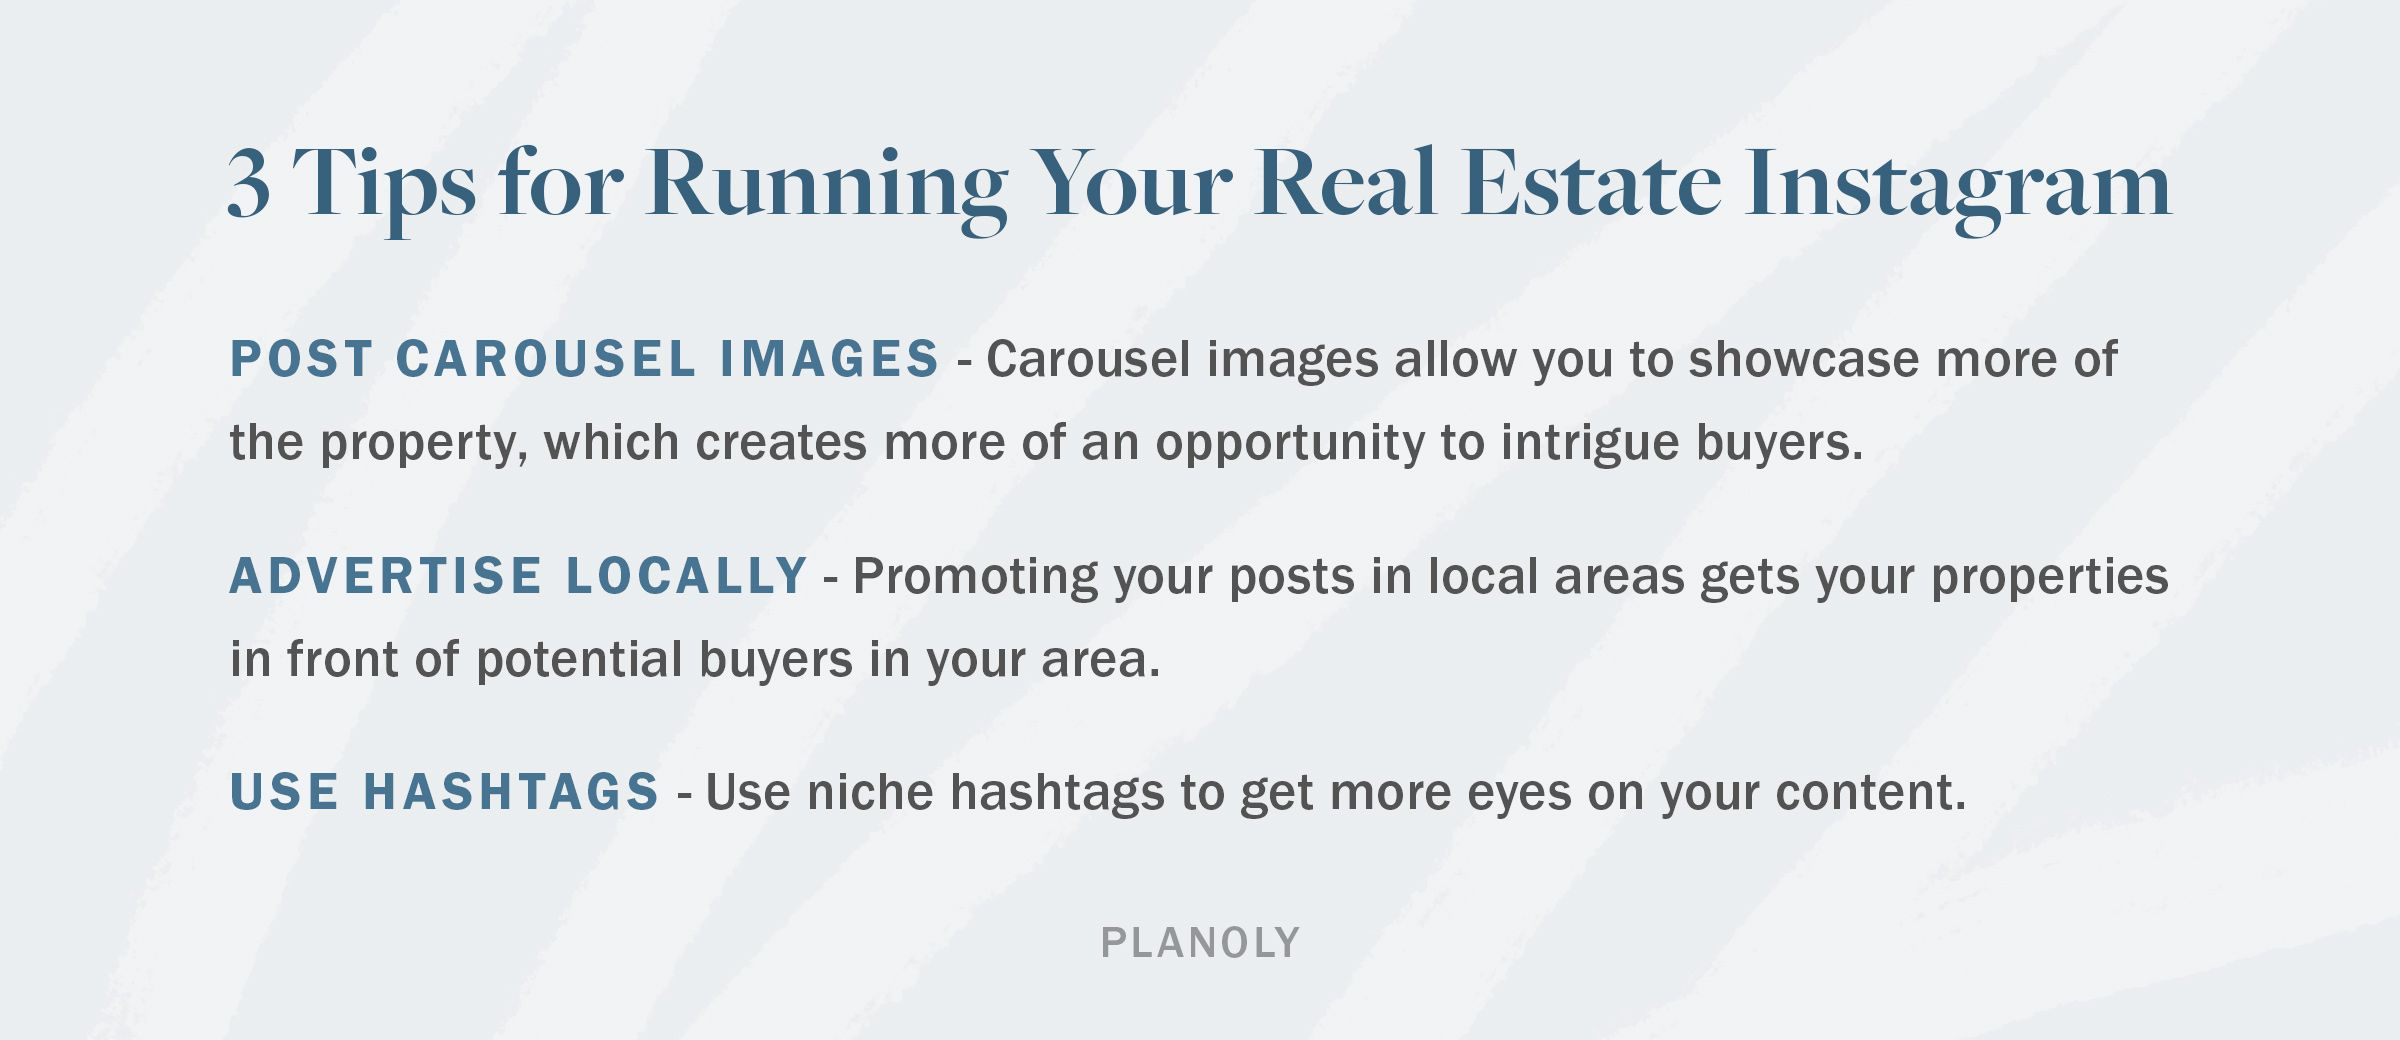 PLANOLY - Blog - Real Estate Social Media Best Practices and Tools - Horizontal - 1-1